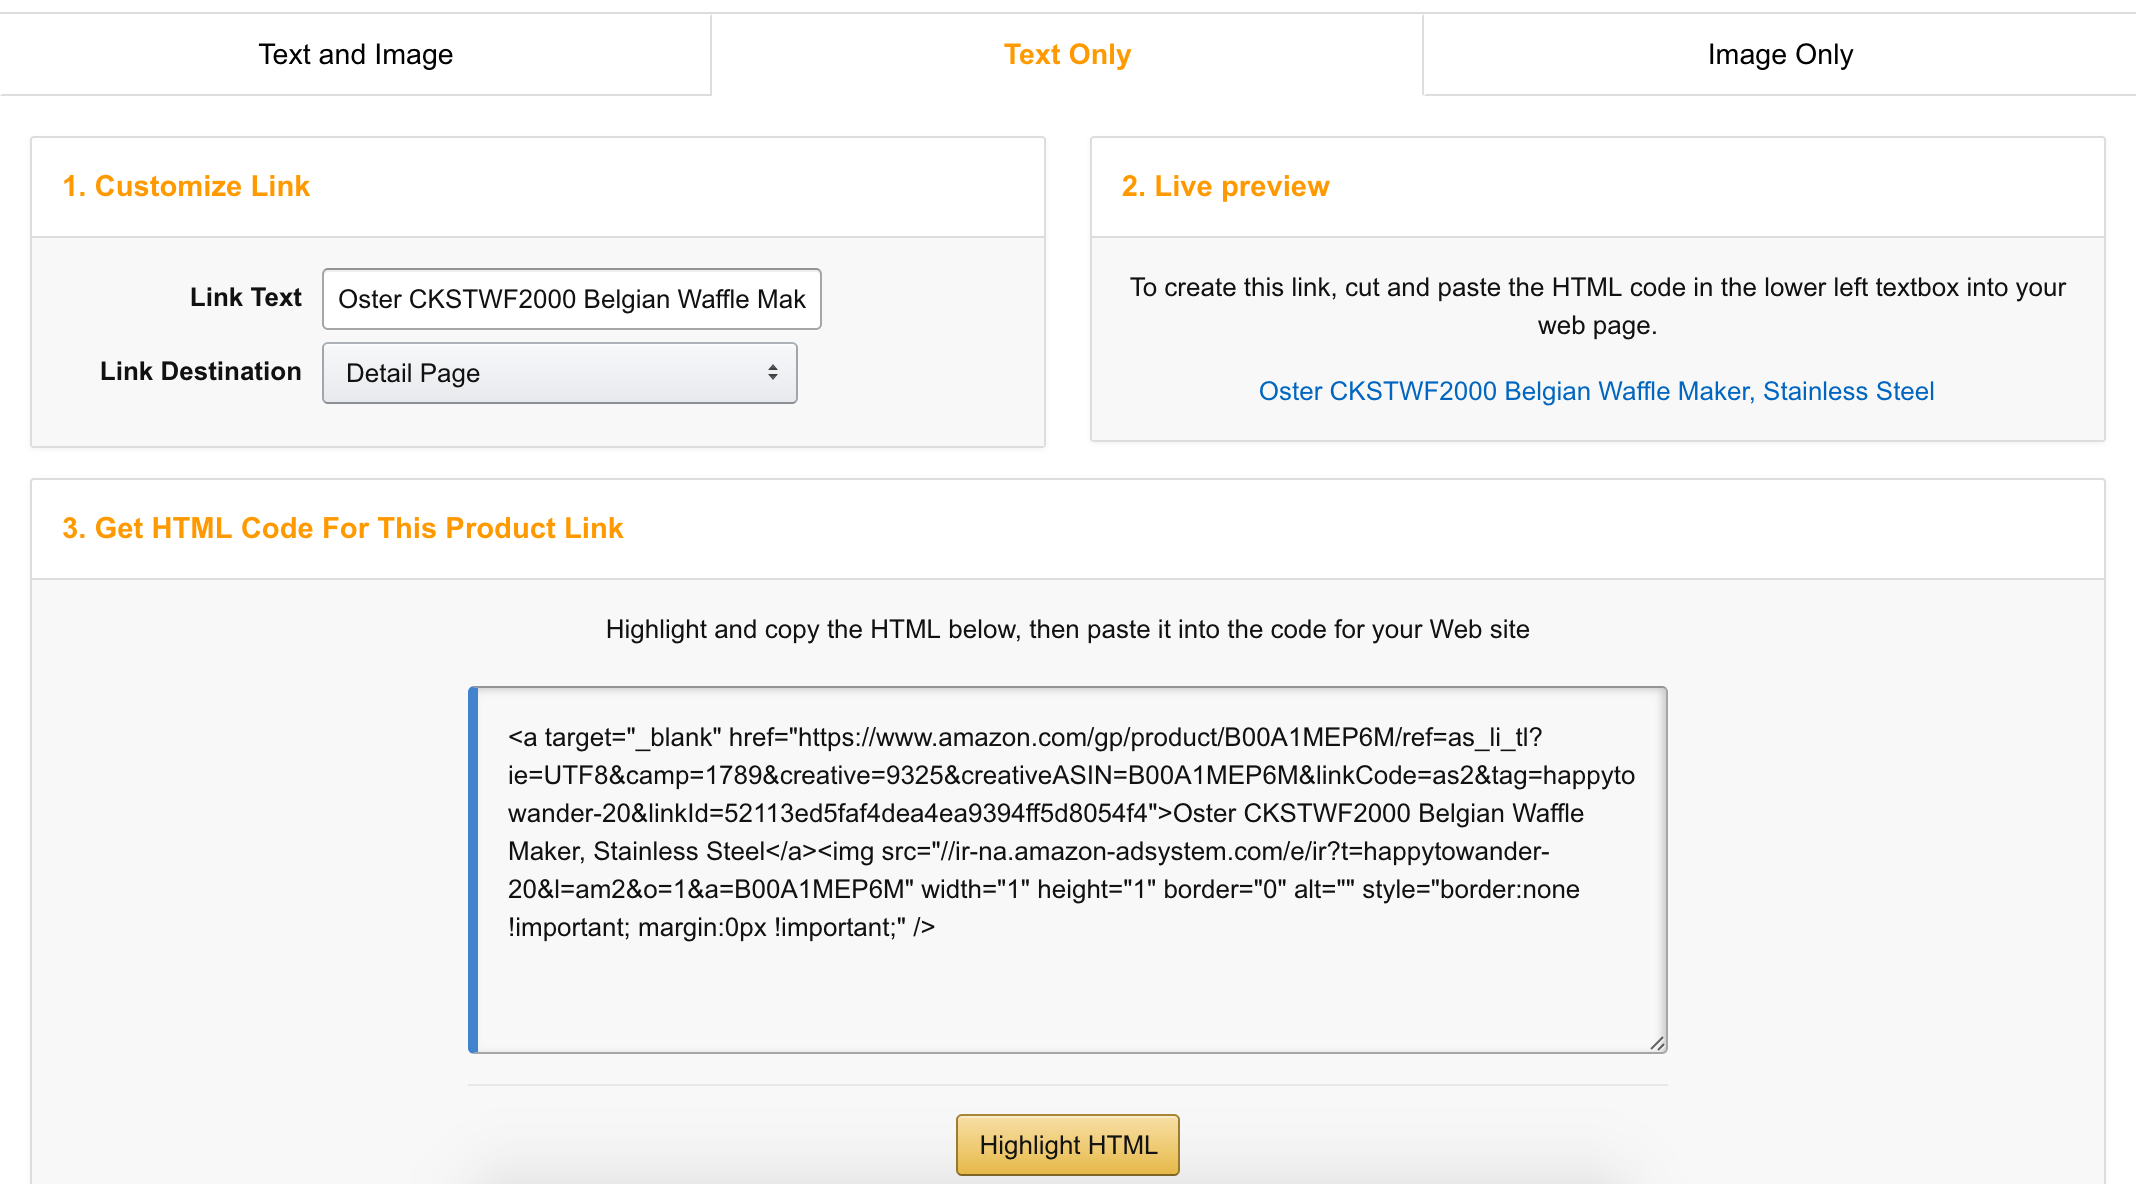 Amazingly easy and simple guide to generating deep links on Amazon Associates. This step by step tutorial is easy, clear and perfect for affiliate marketers looking to start out!